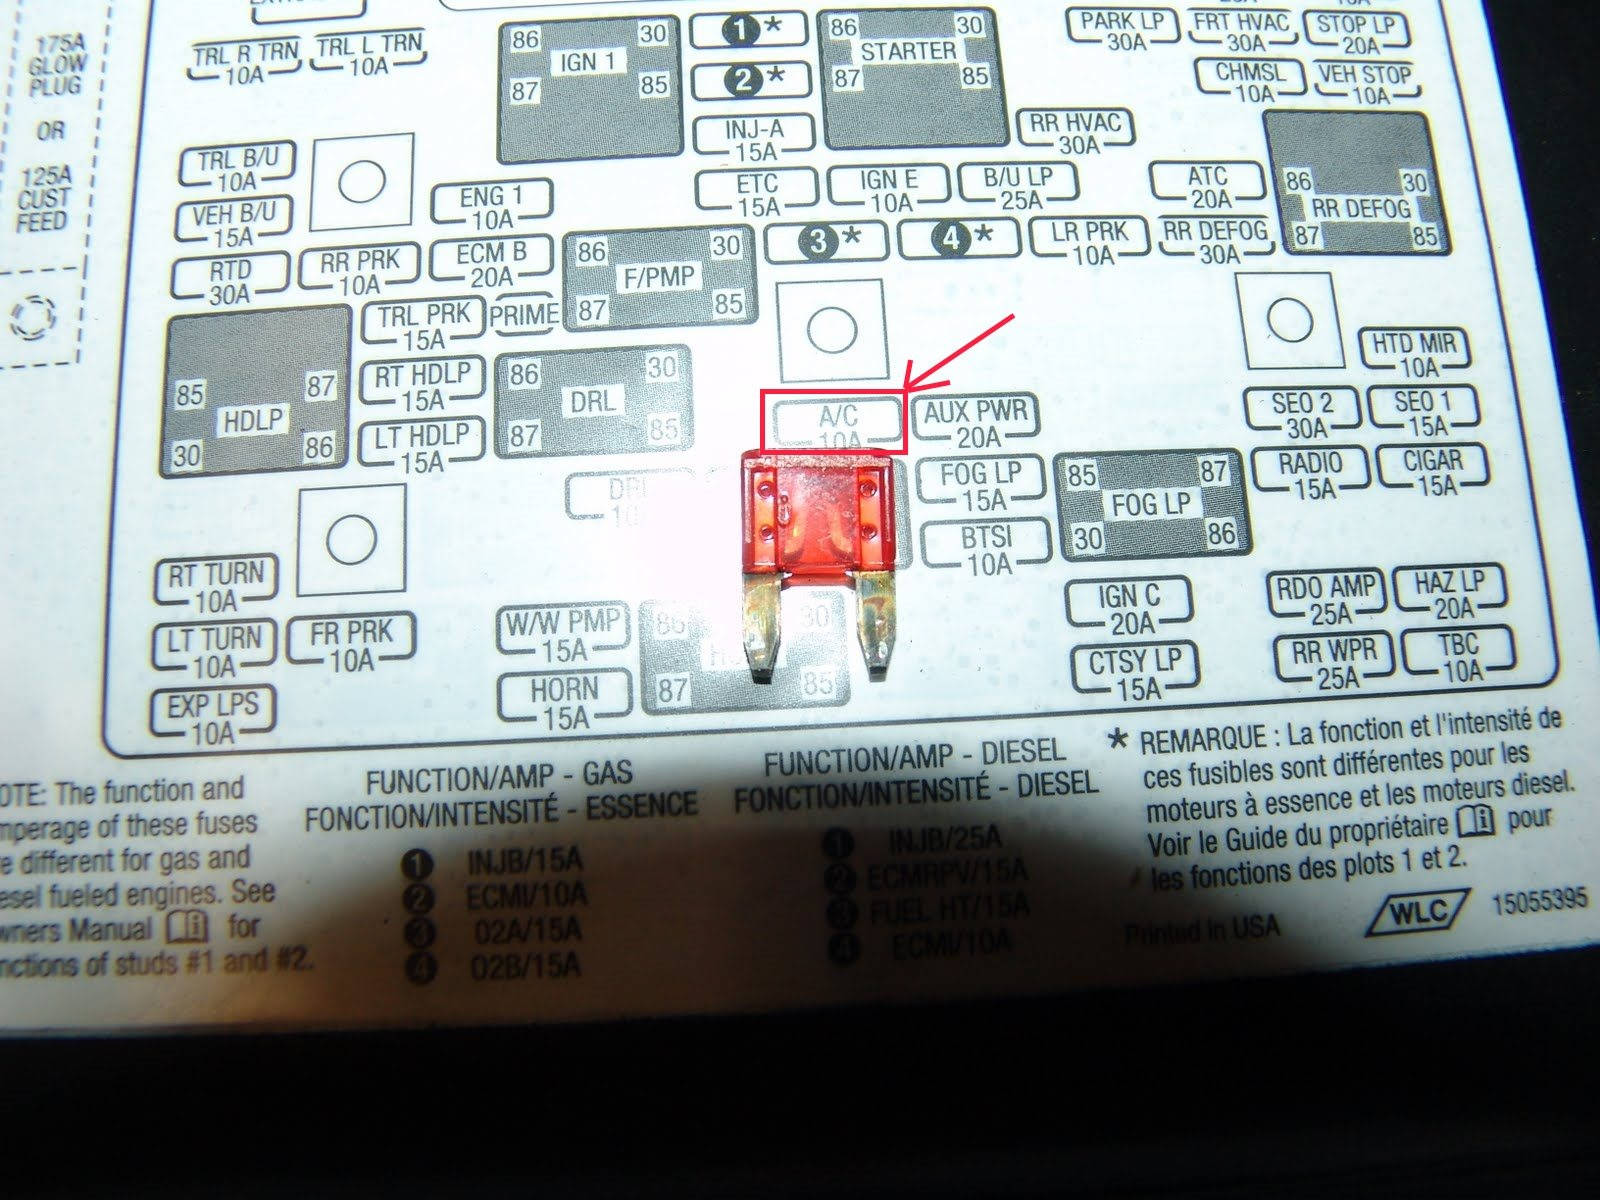 2002 Saab 9 5 Fuse Box Diagram Ford 660 Wiring Diagram For Wiring Diagram Schematics